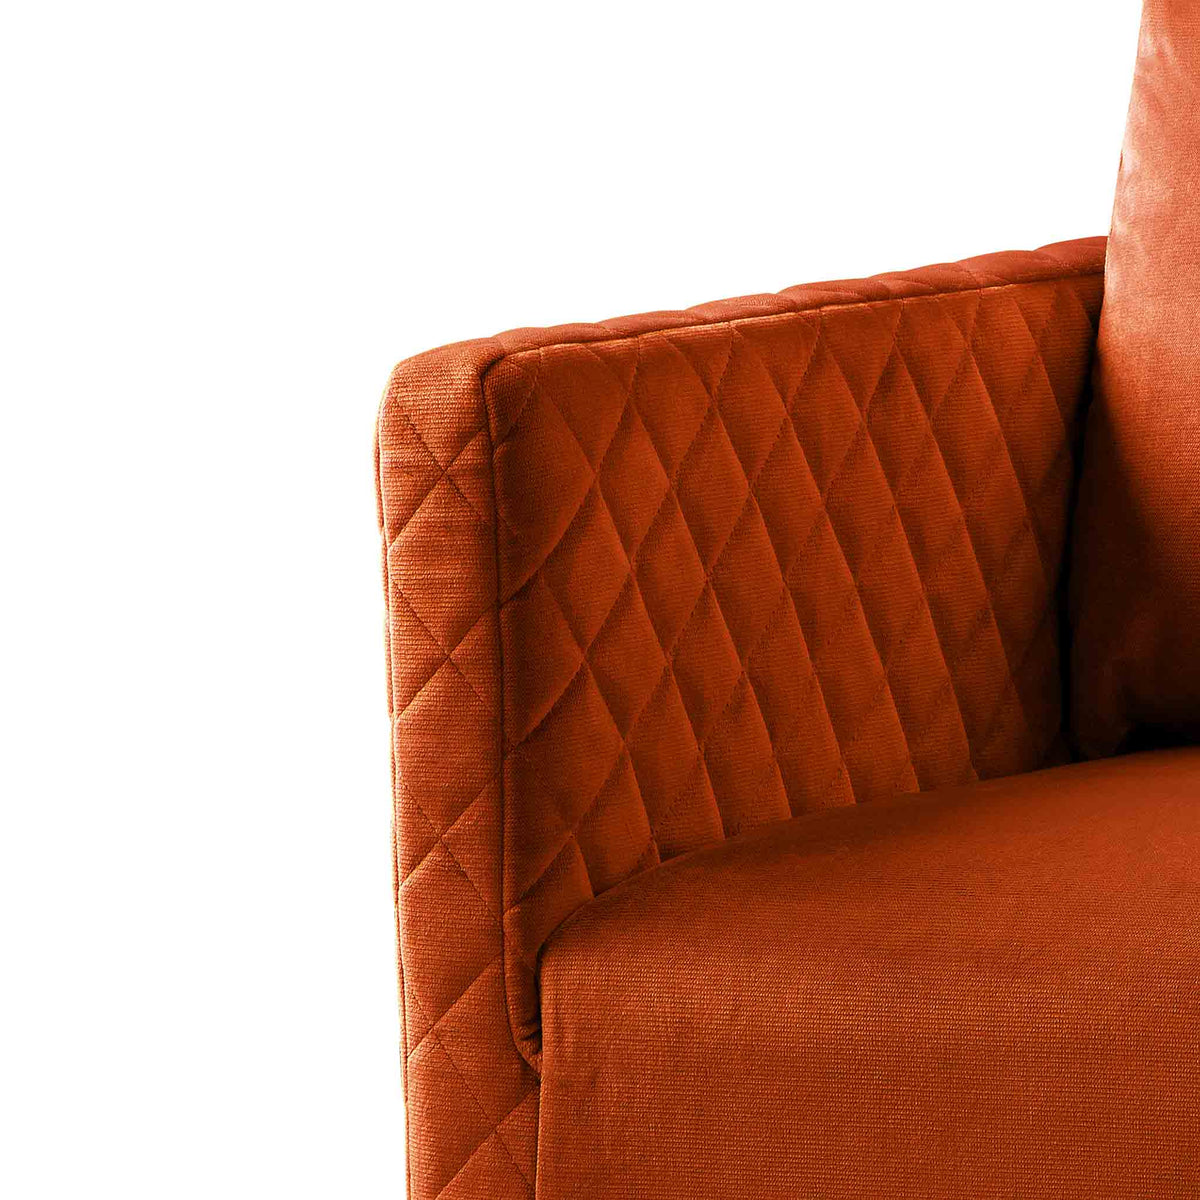 close up of the upholstered velvet fabric on the Bali Apricot Velvet Accent Chair